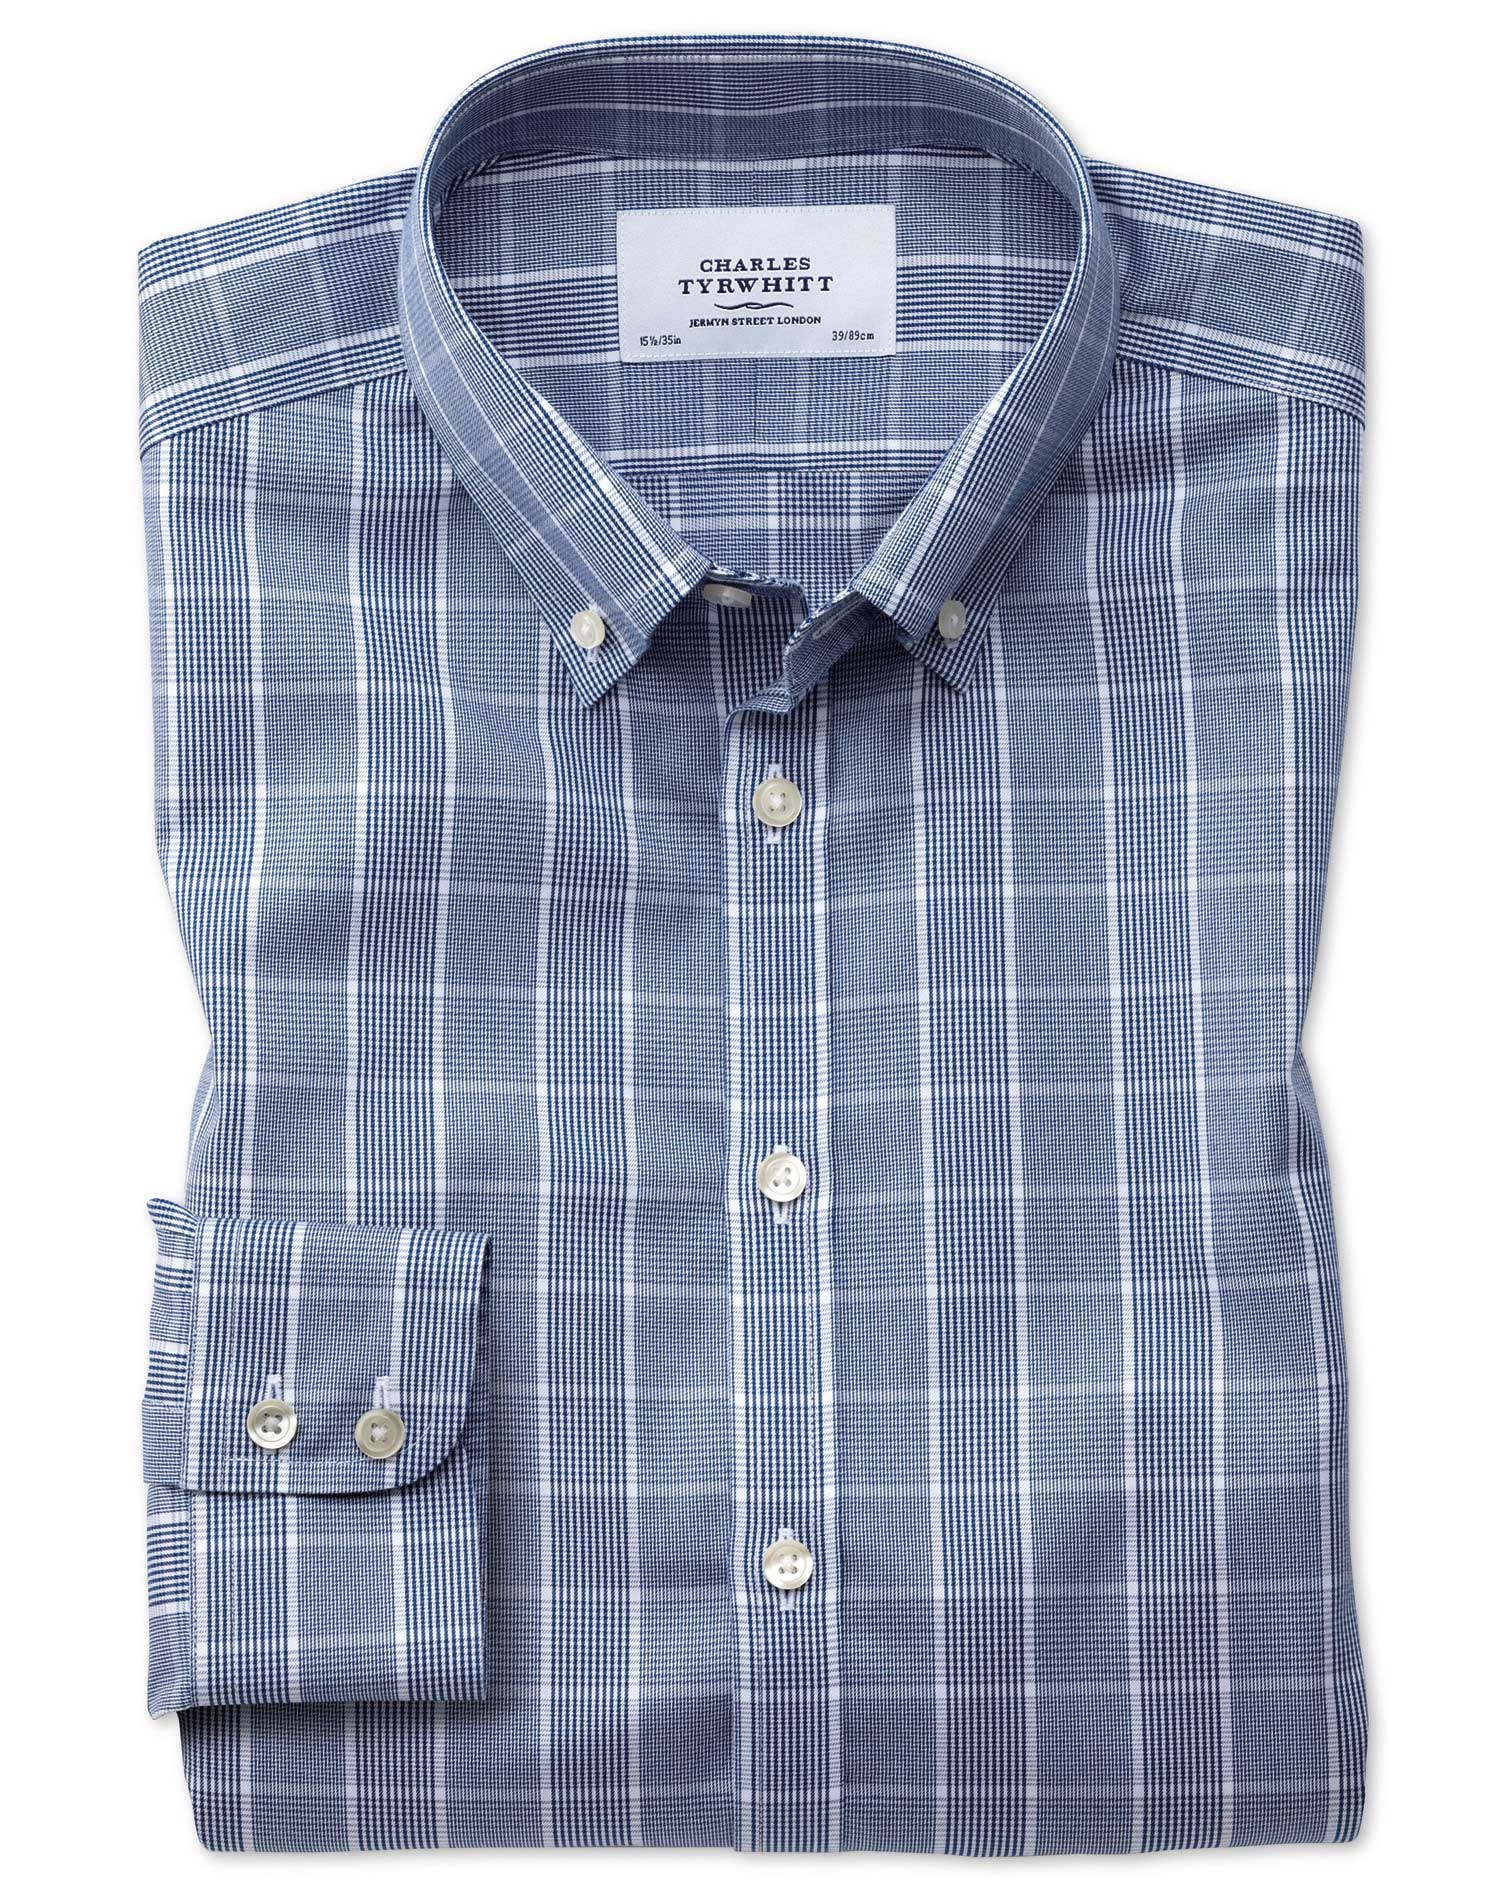 Slim Fit Button-Down Non-Iron Prince Of Wales Navy Blue and White Cotton Formal Shirt Single Cuff Si